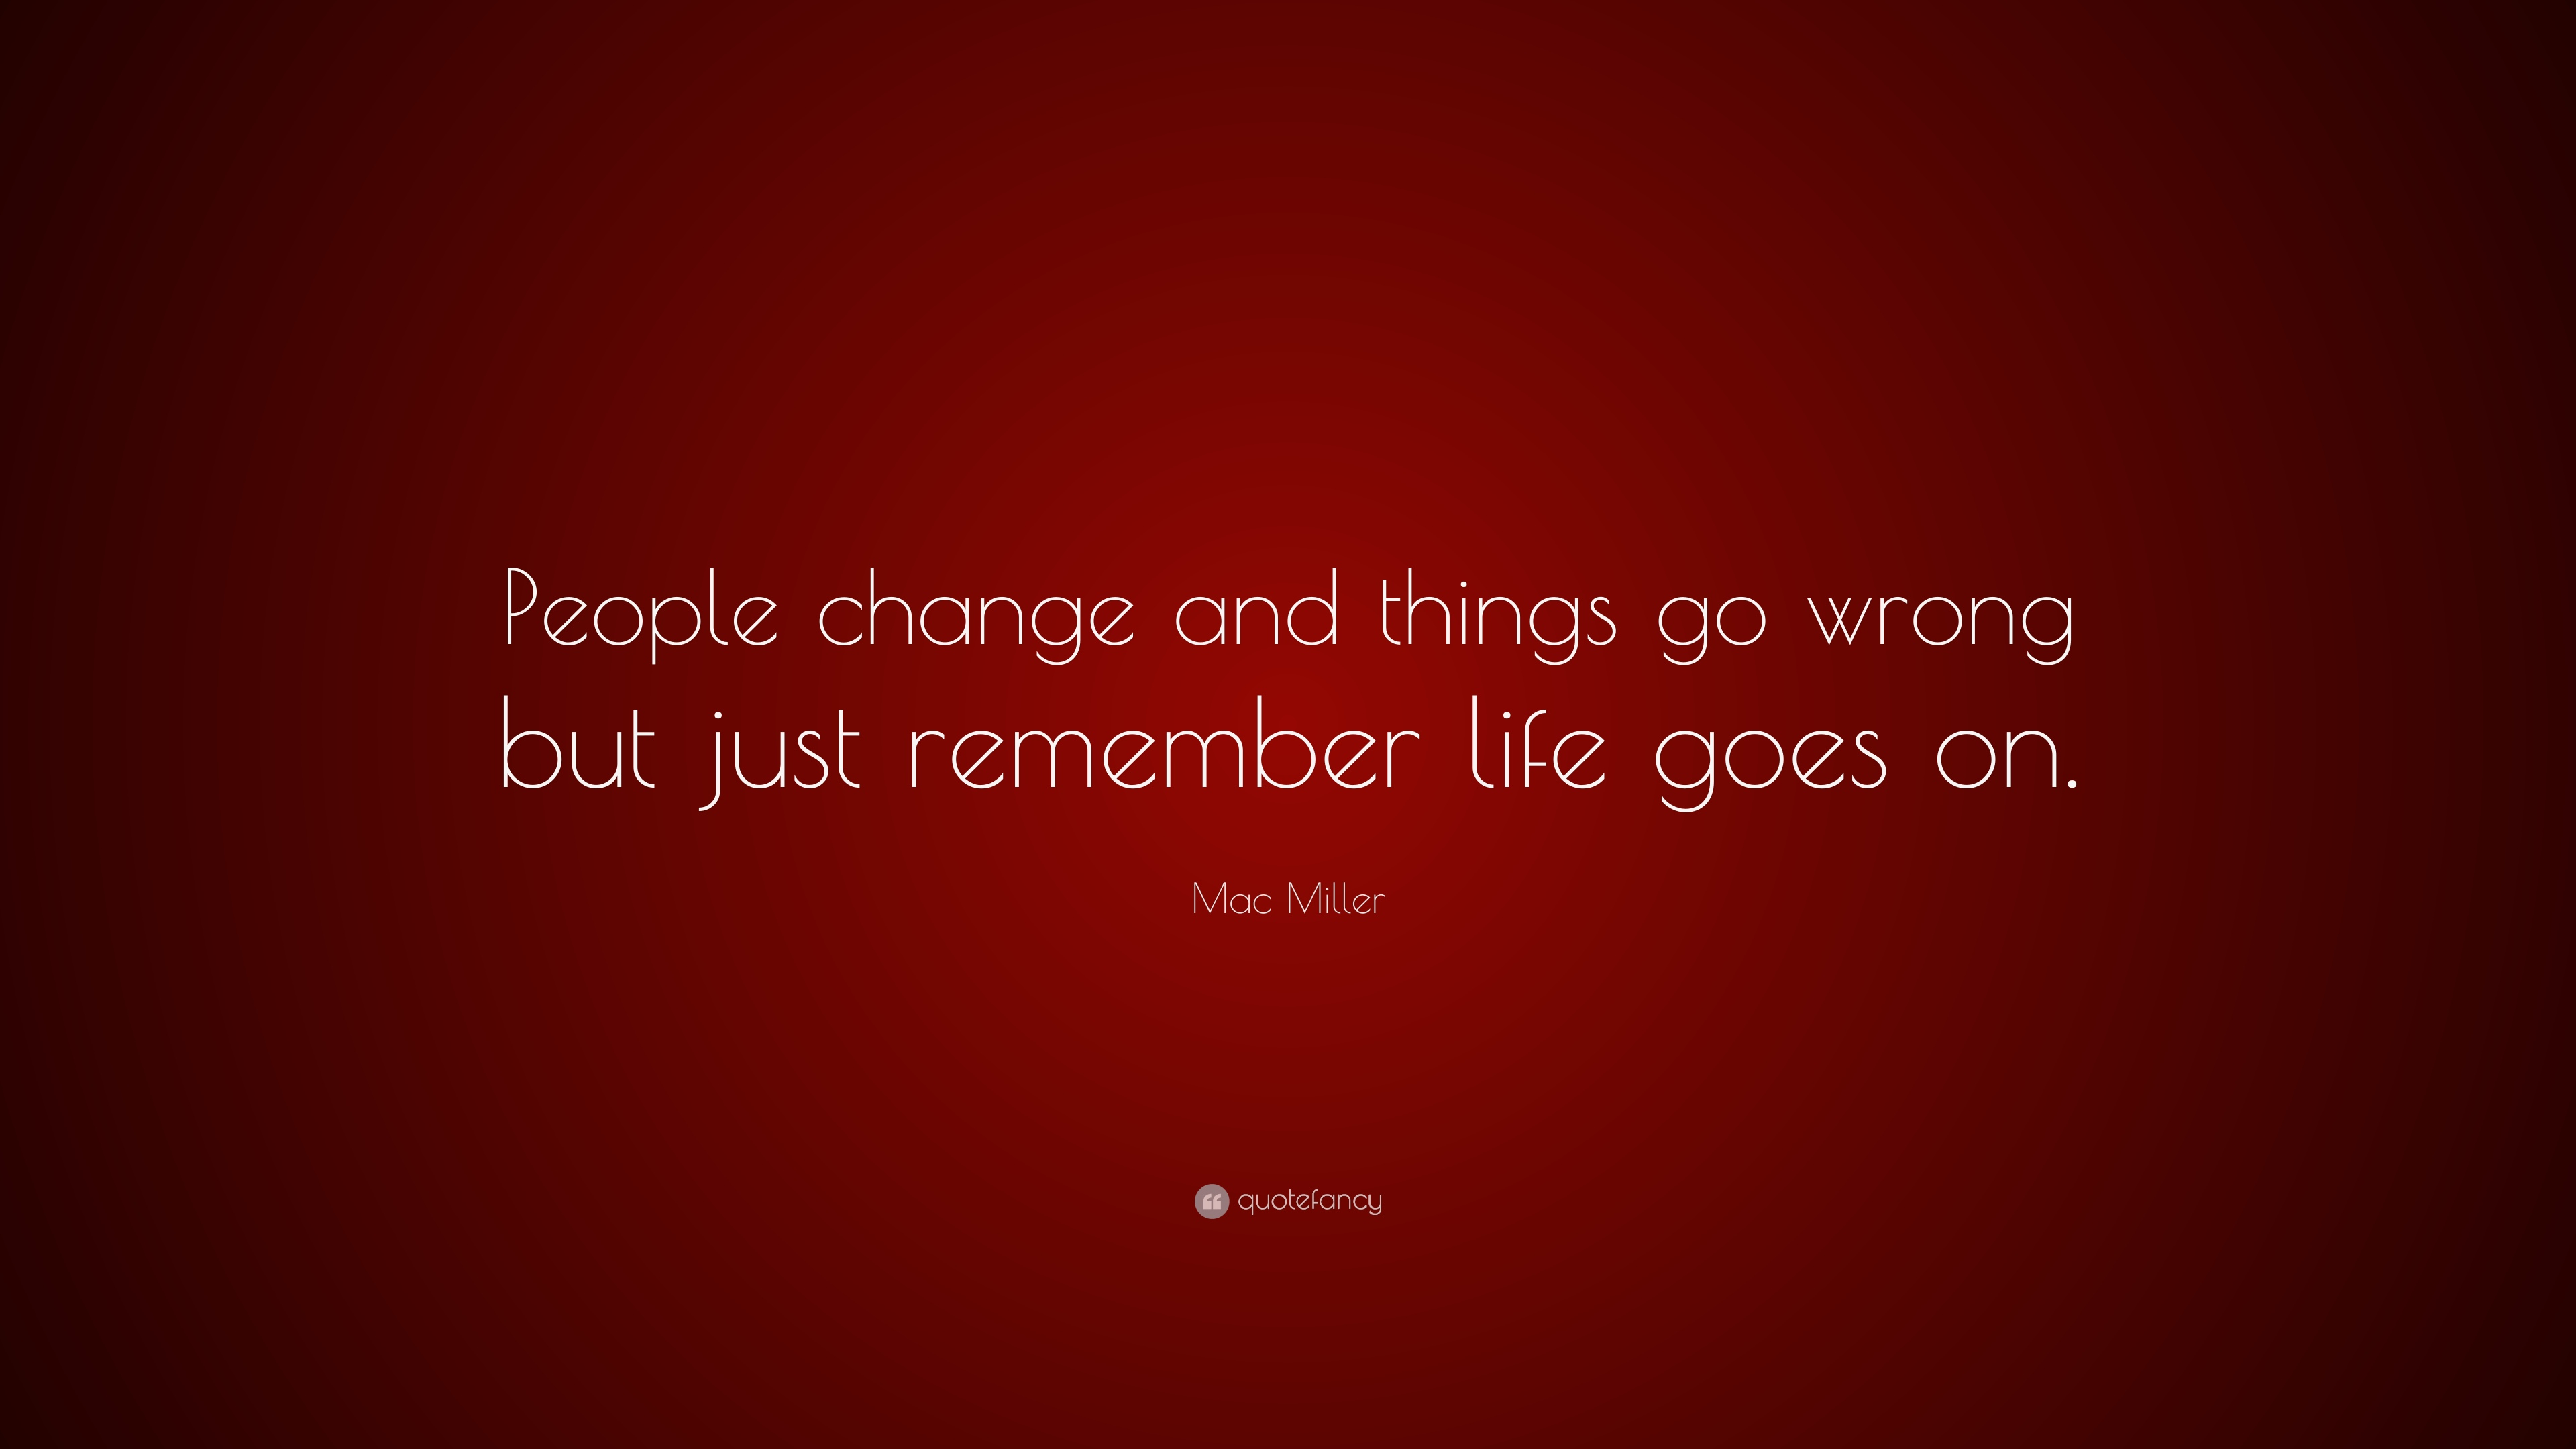 Good Wallpaper Mac Quotes - 1024155-Mac-Miller-Quote-People-change-and-things-go-wrong-but-just  Snapshot_827153.jpg